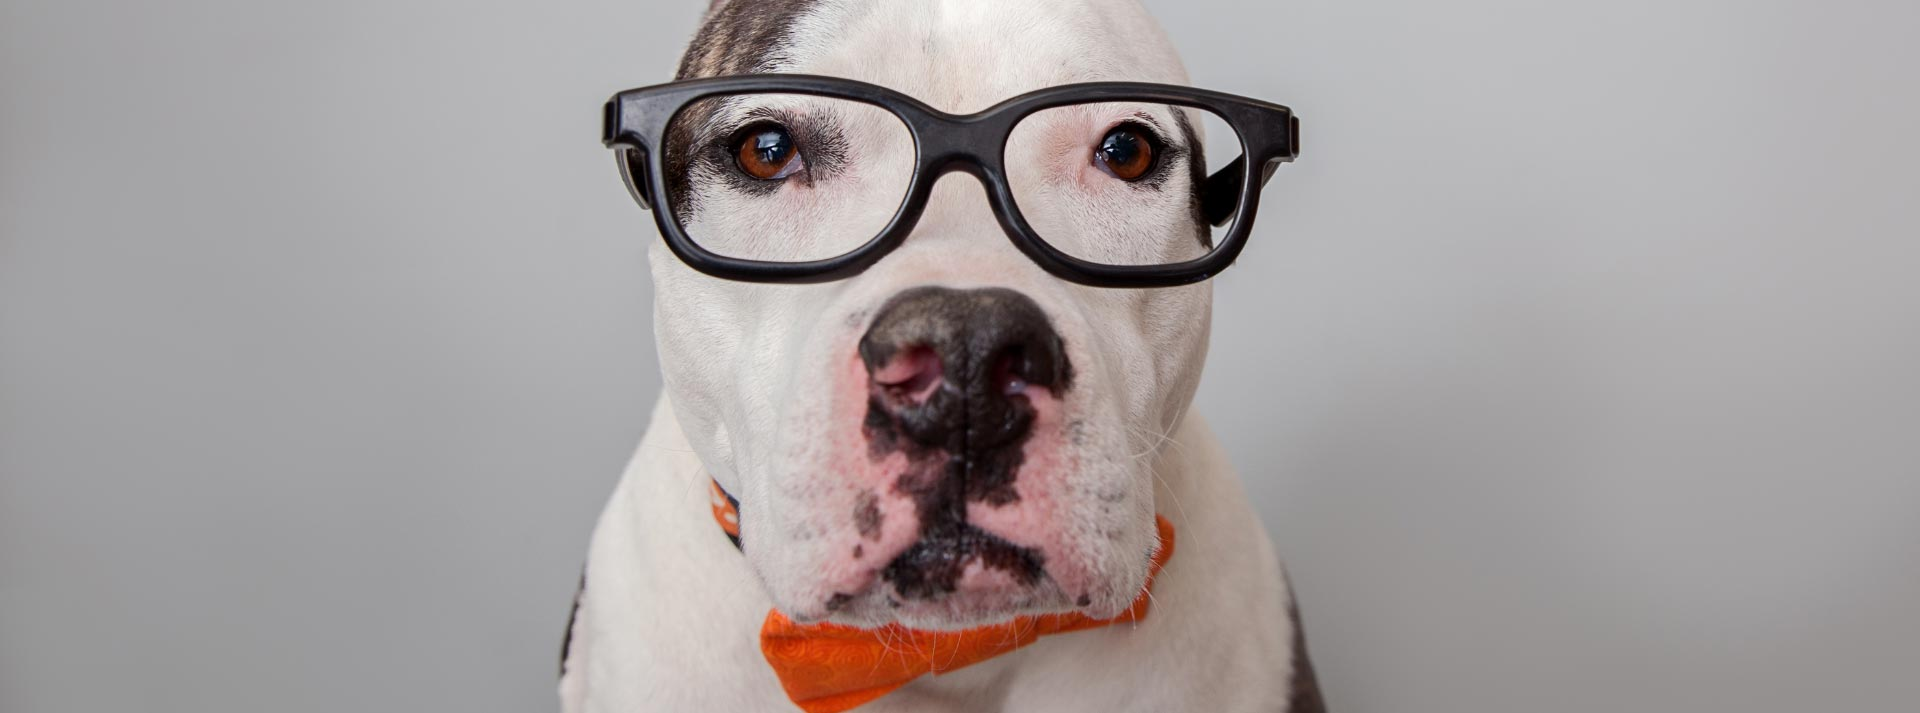 White dog with black rimmed glasses on